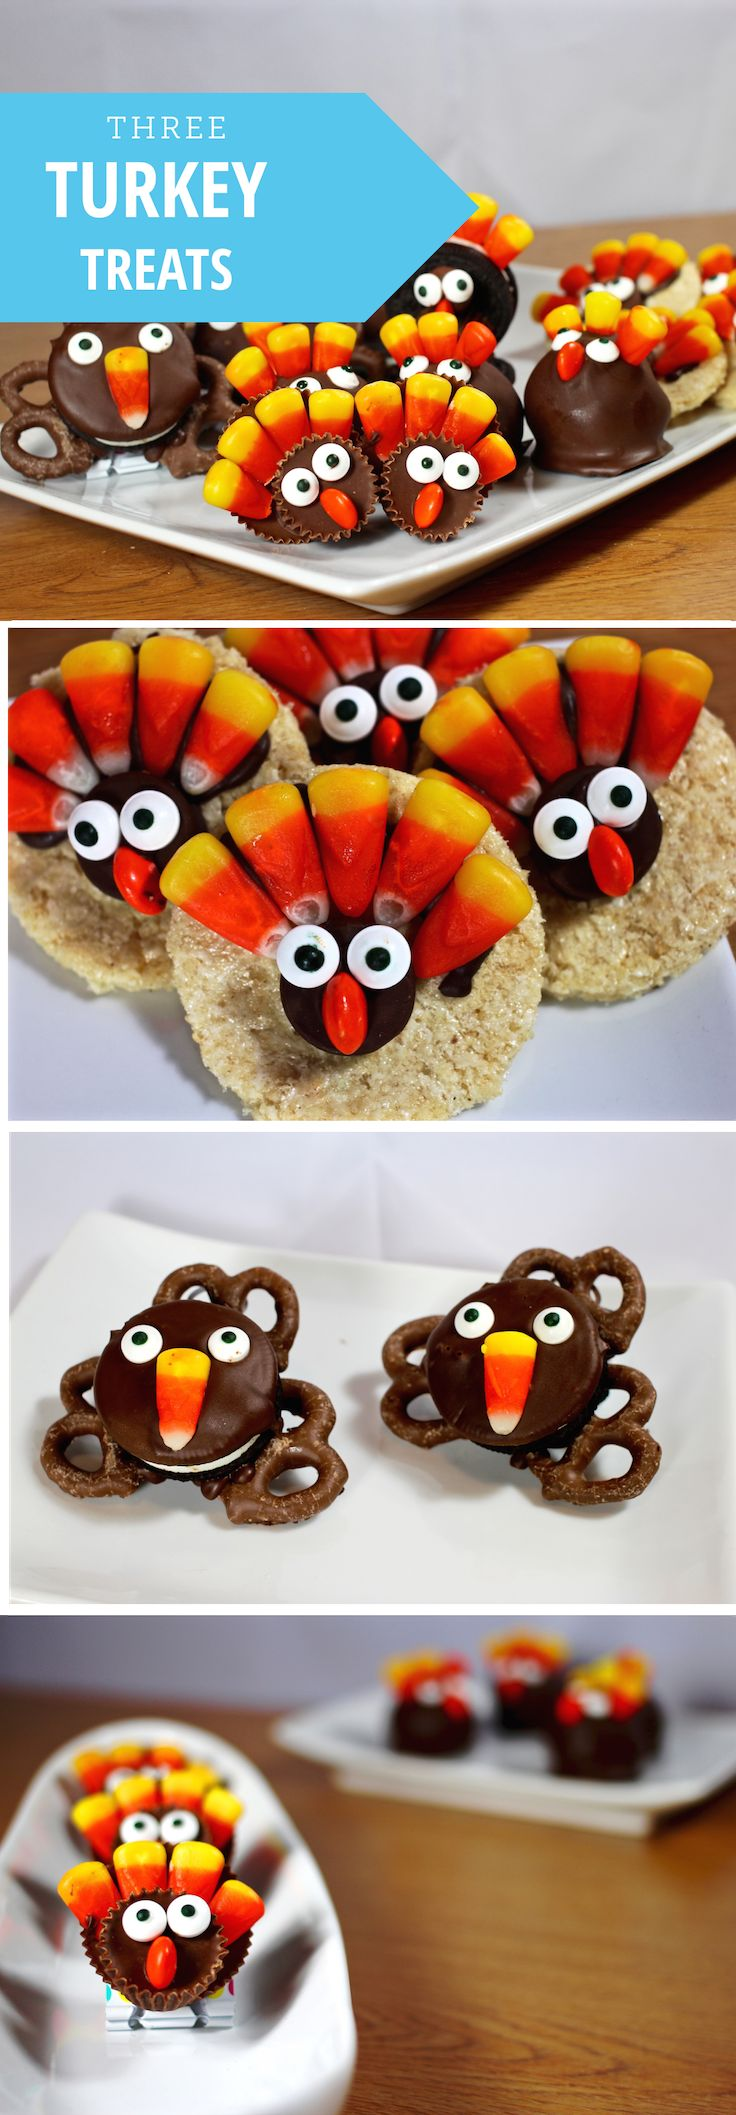 For those of you staying on campus, have no fear — staying on campus doesn't mean you can't celebrate Thanksgiving in style. These treats are easy enough to make in a dorm room, but also cute enough to share with family and friends at home.